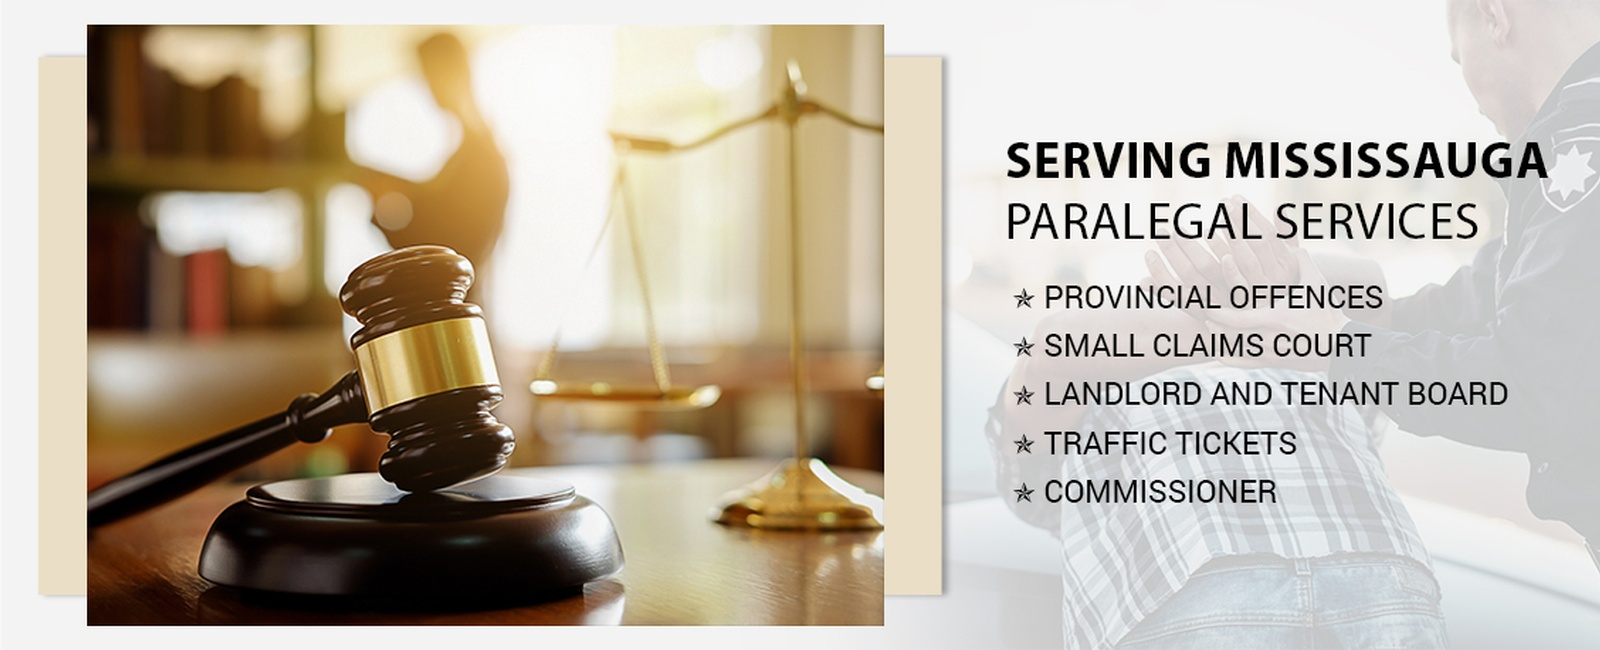 Paralegal services in Mississauga